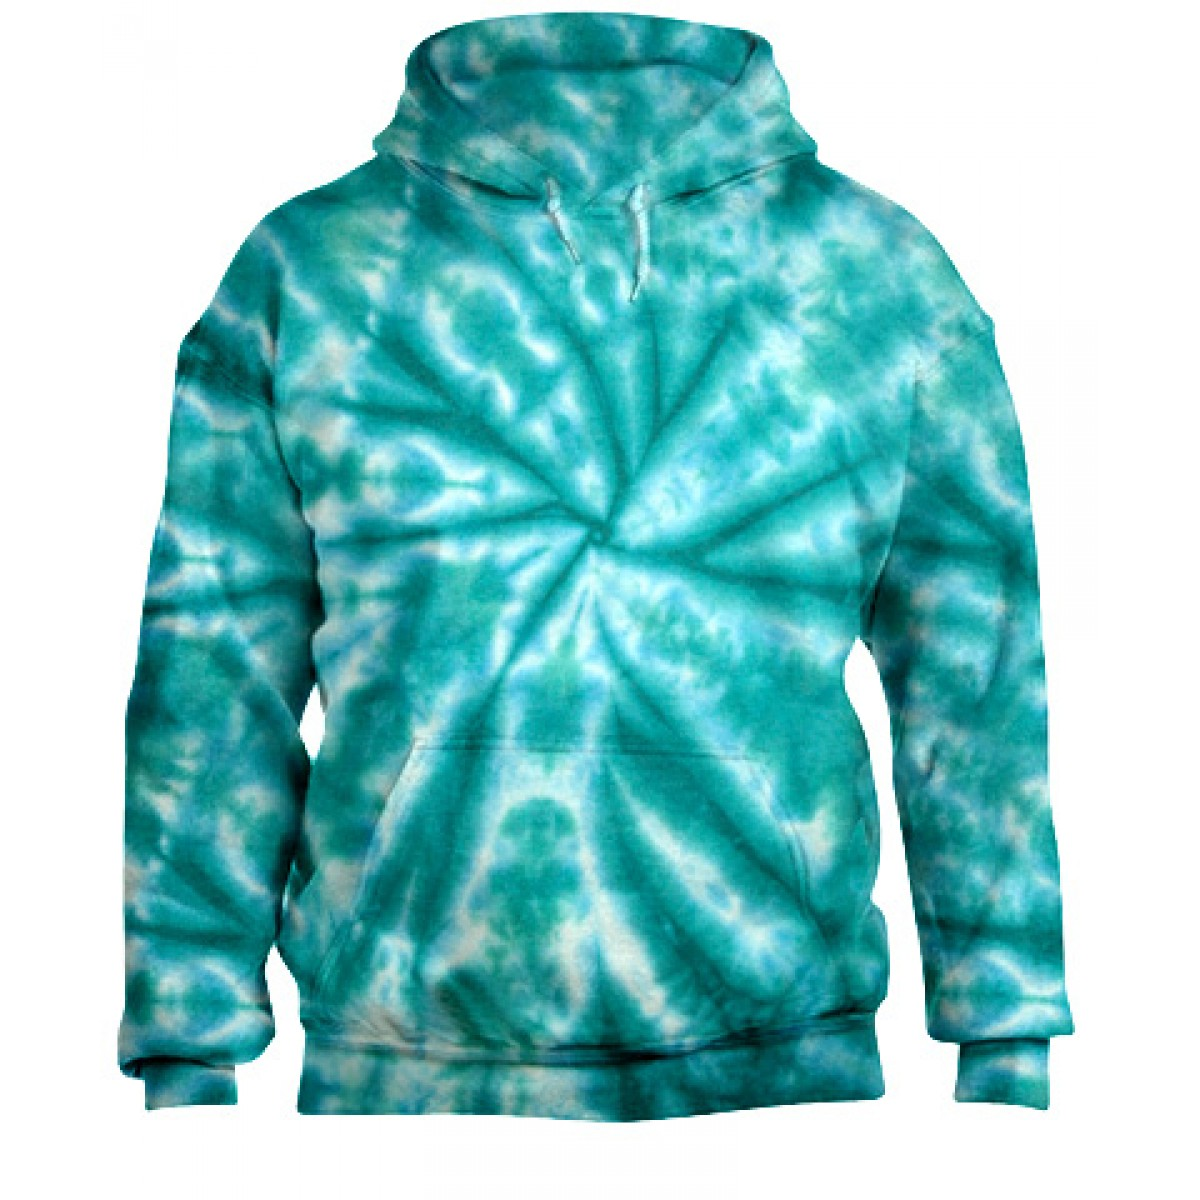 Tie-Dye Pullover Hooded Sweatshirt-Jade-2XL